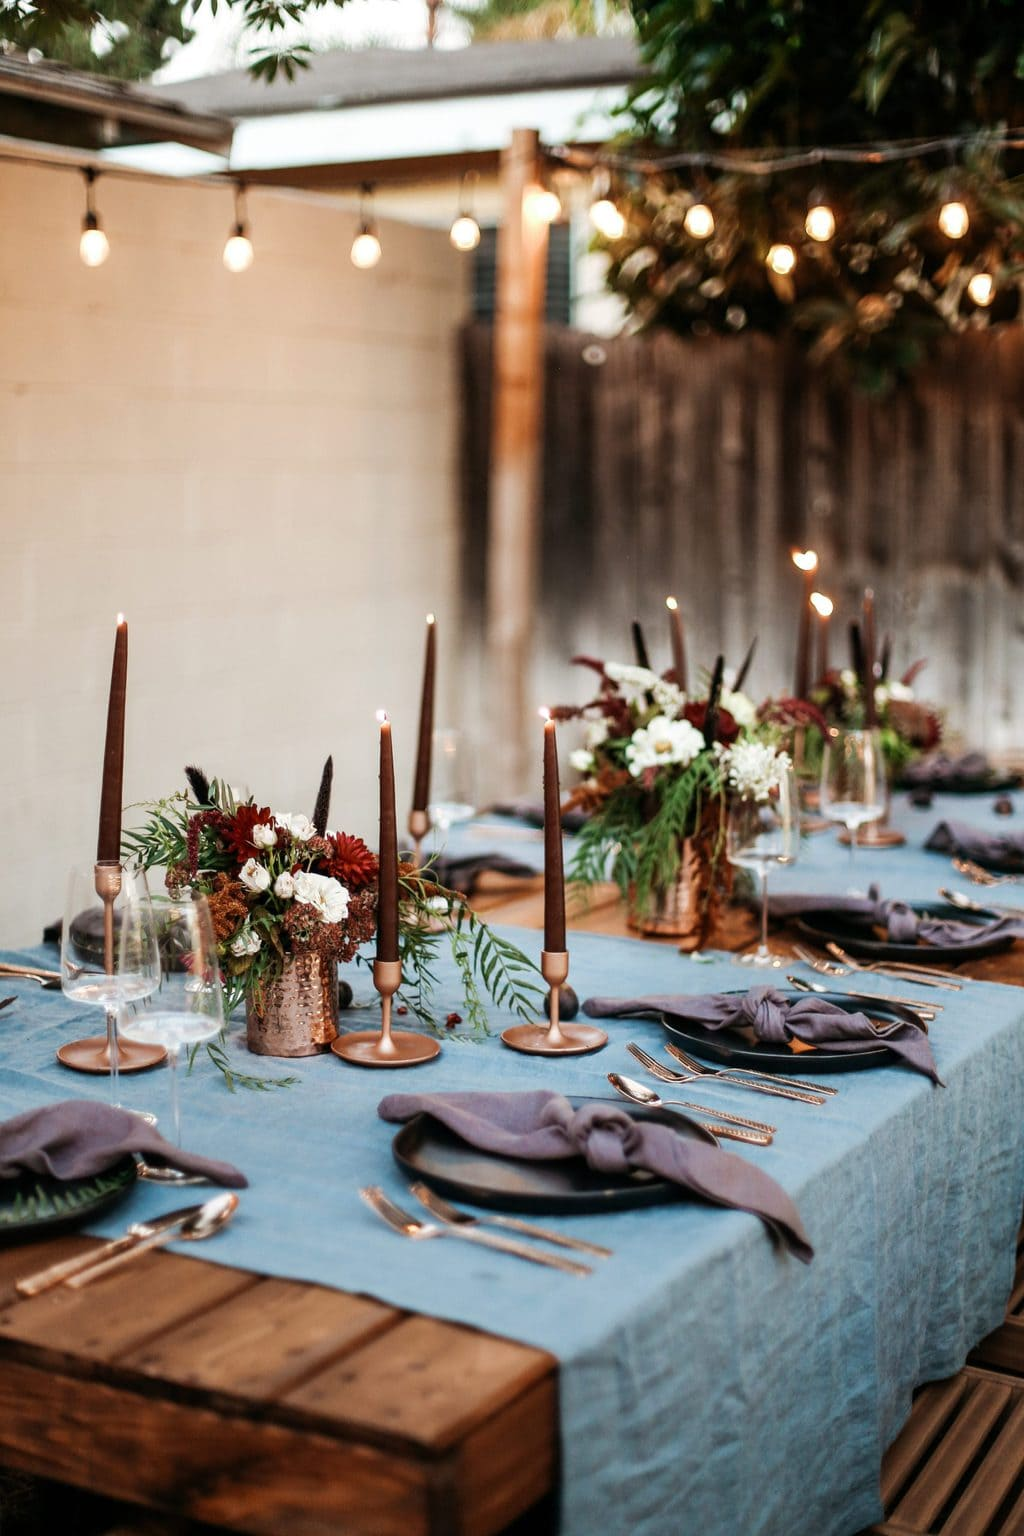 A moody dinner party set up with taper candles and string lights lit up.